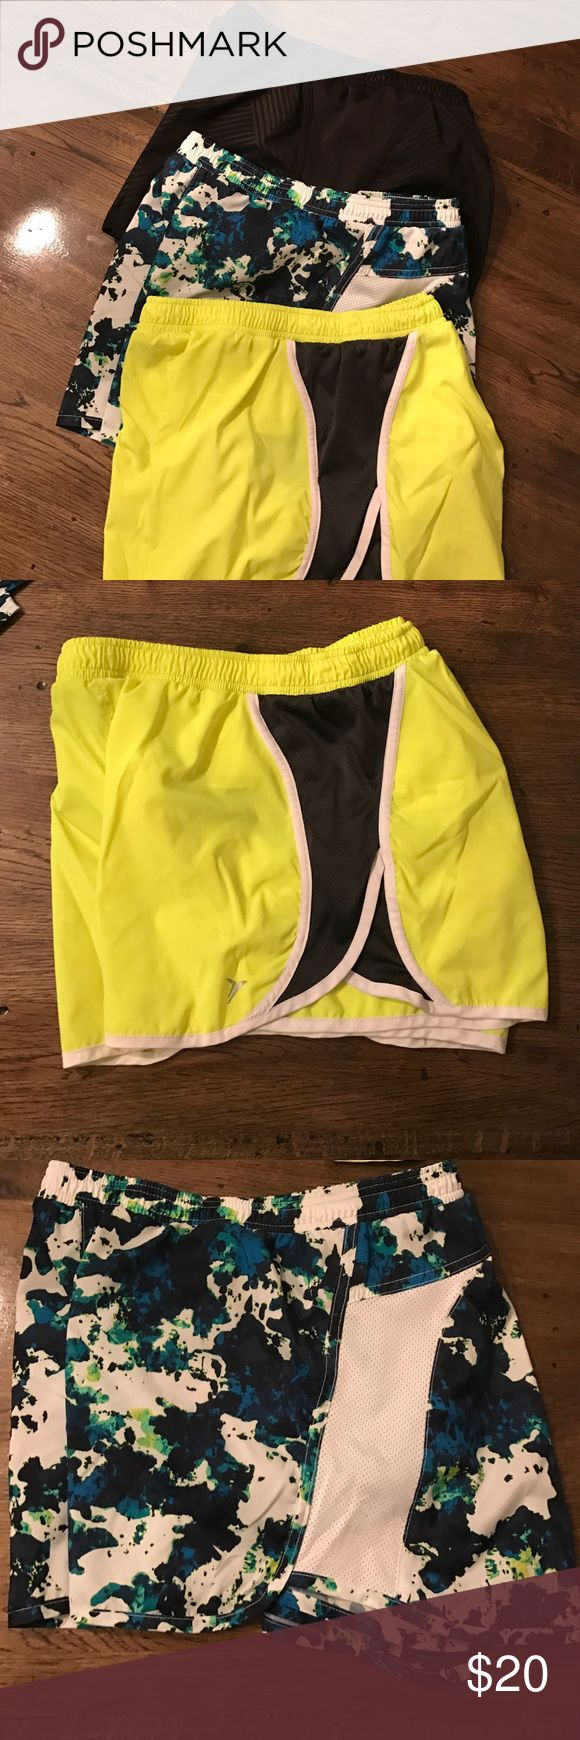 Old Navy Women's Running Shorts Old Navy Women's Running Shorts with built in mesh underwear Old Navy Shorts